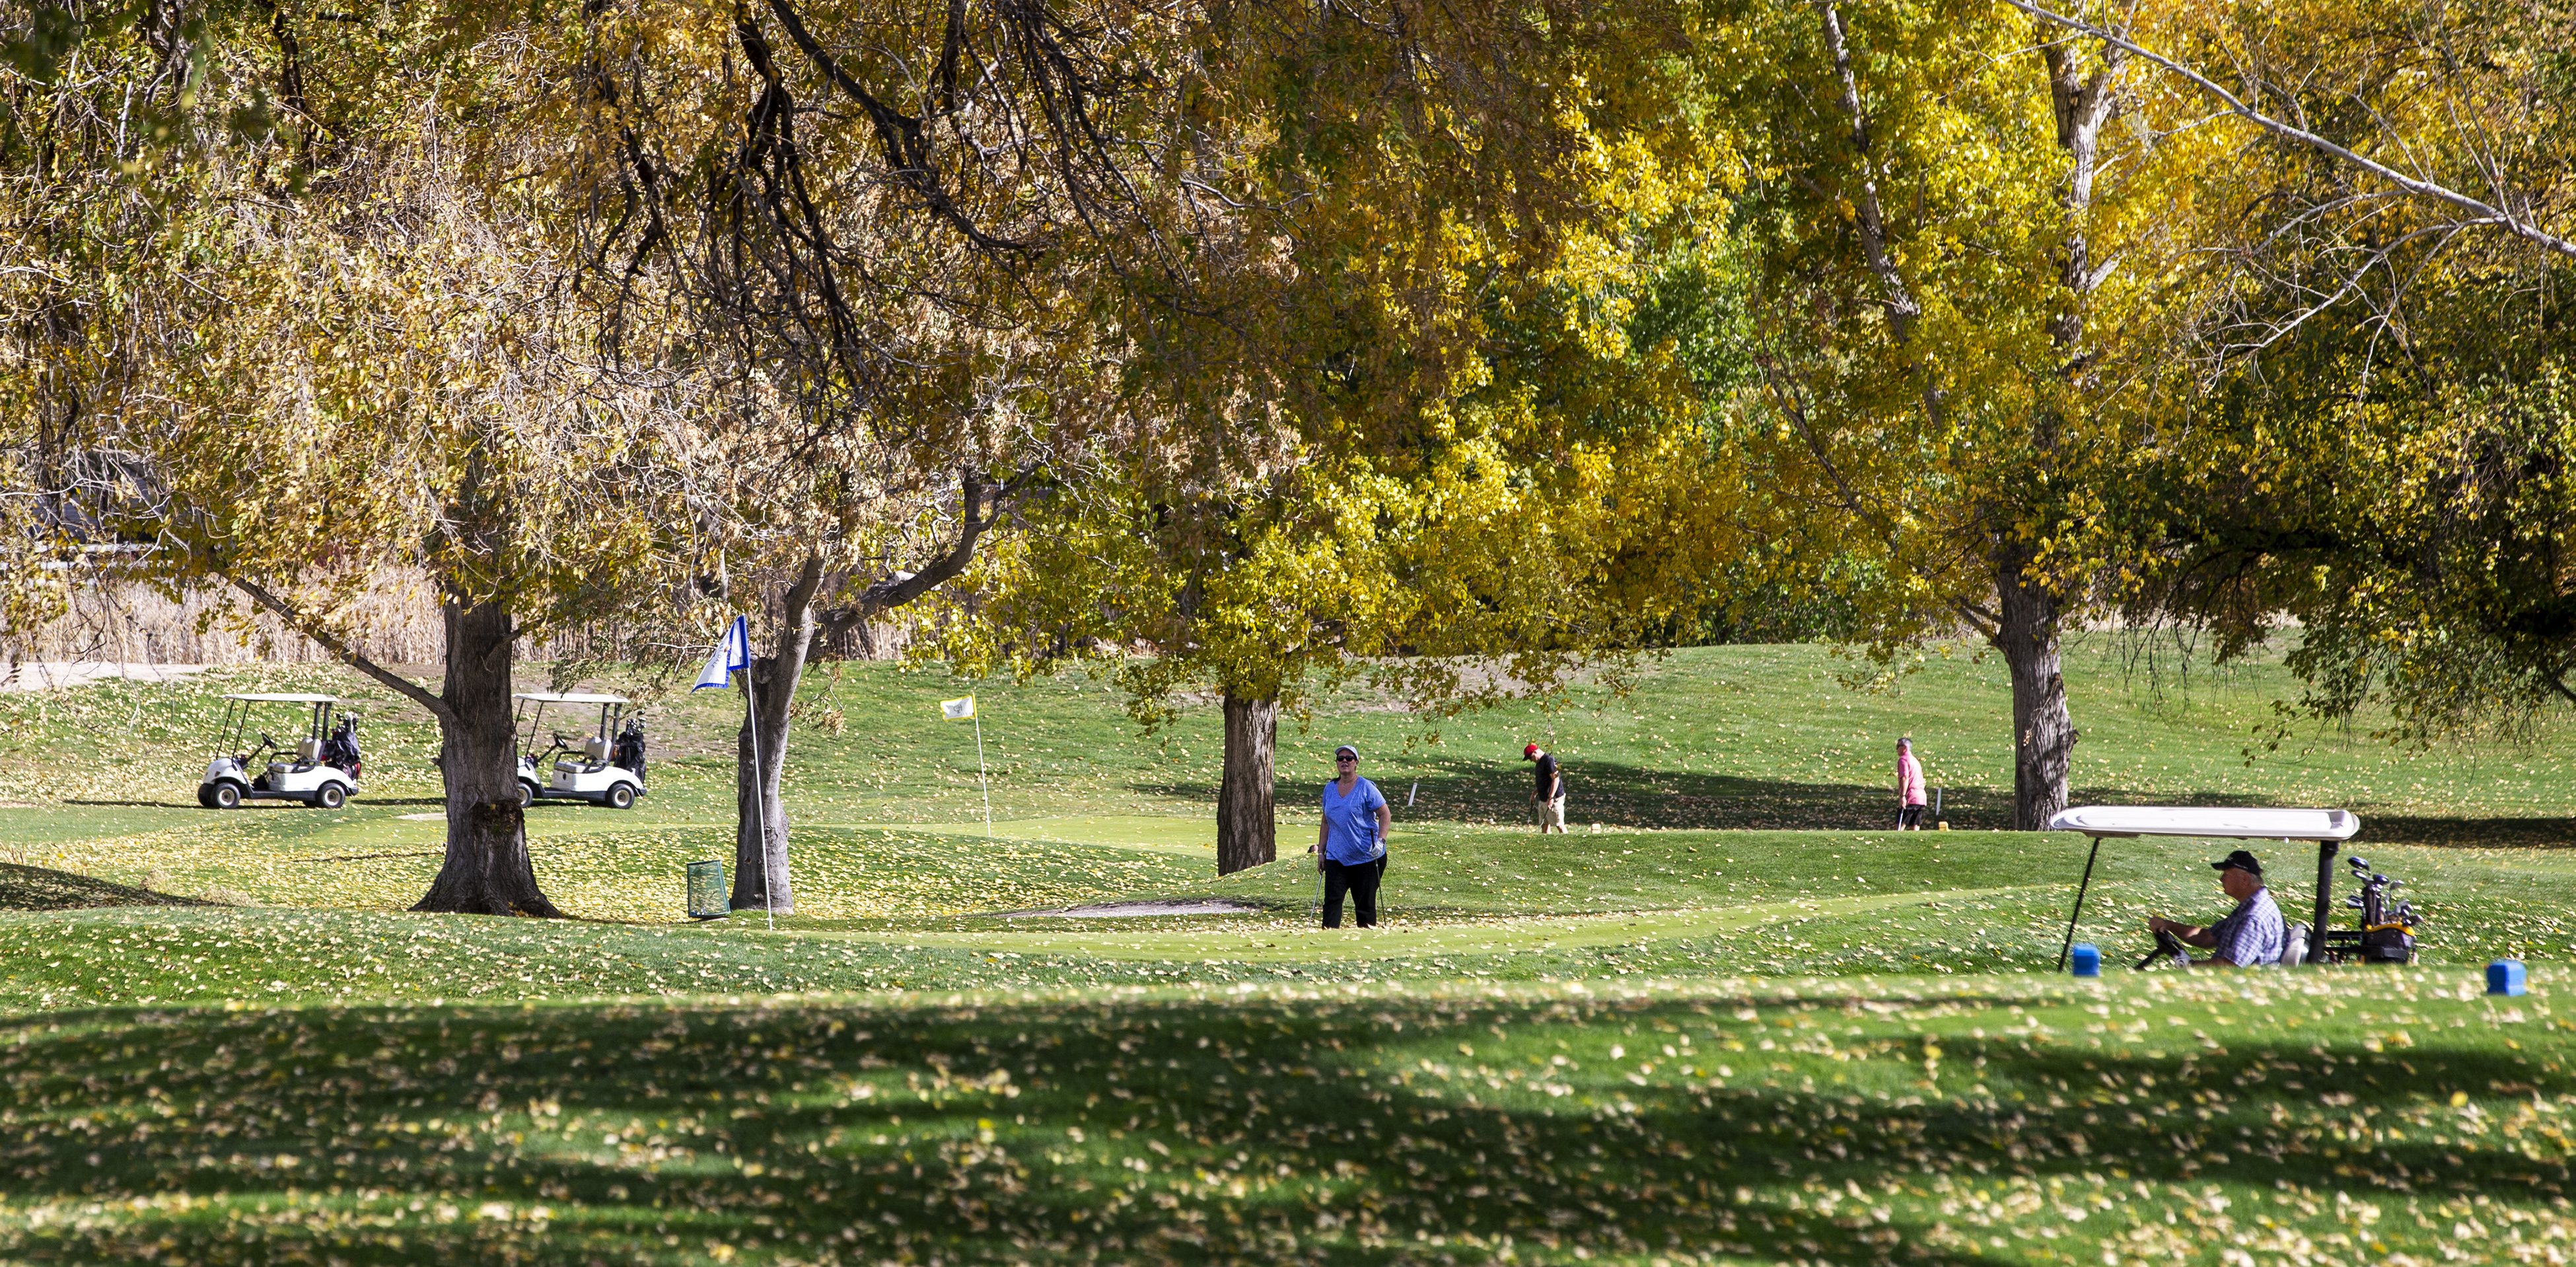 Golfers get in a few holes at Forest Dale Golf Course in Salt Lake City on Sunday, Oct. 28, 2018.